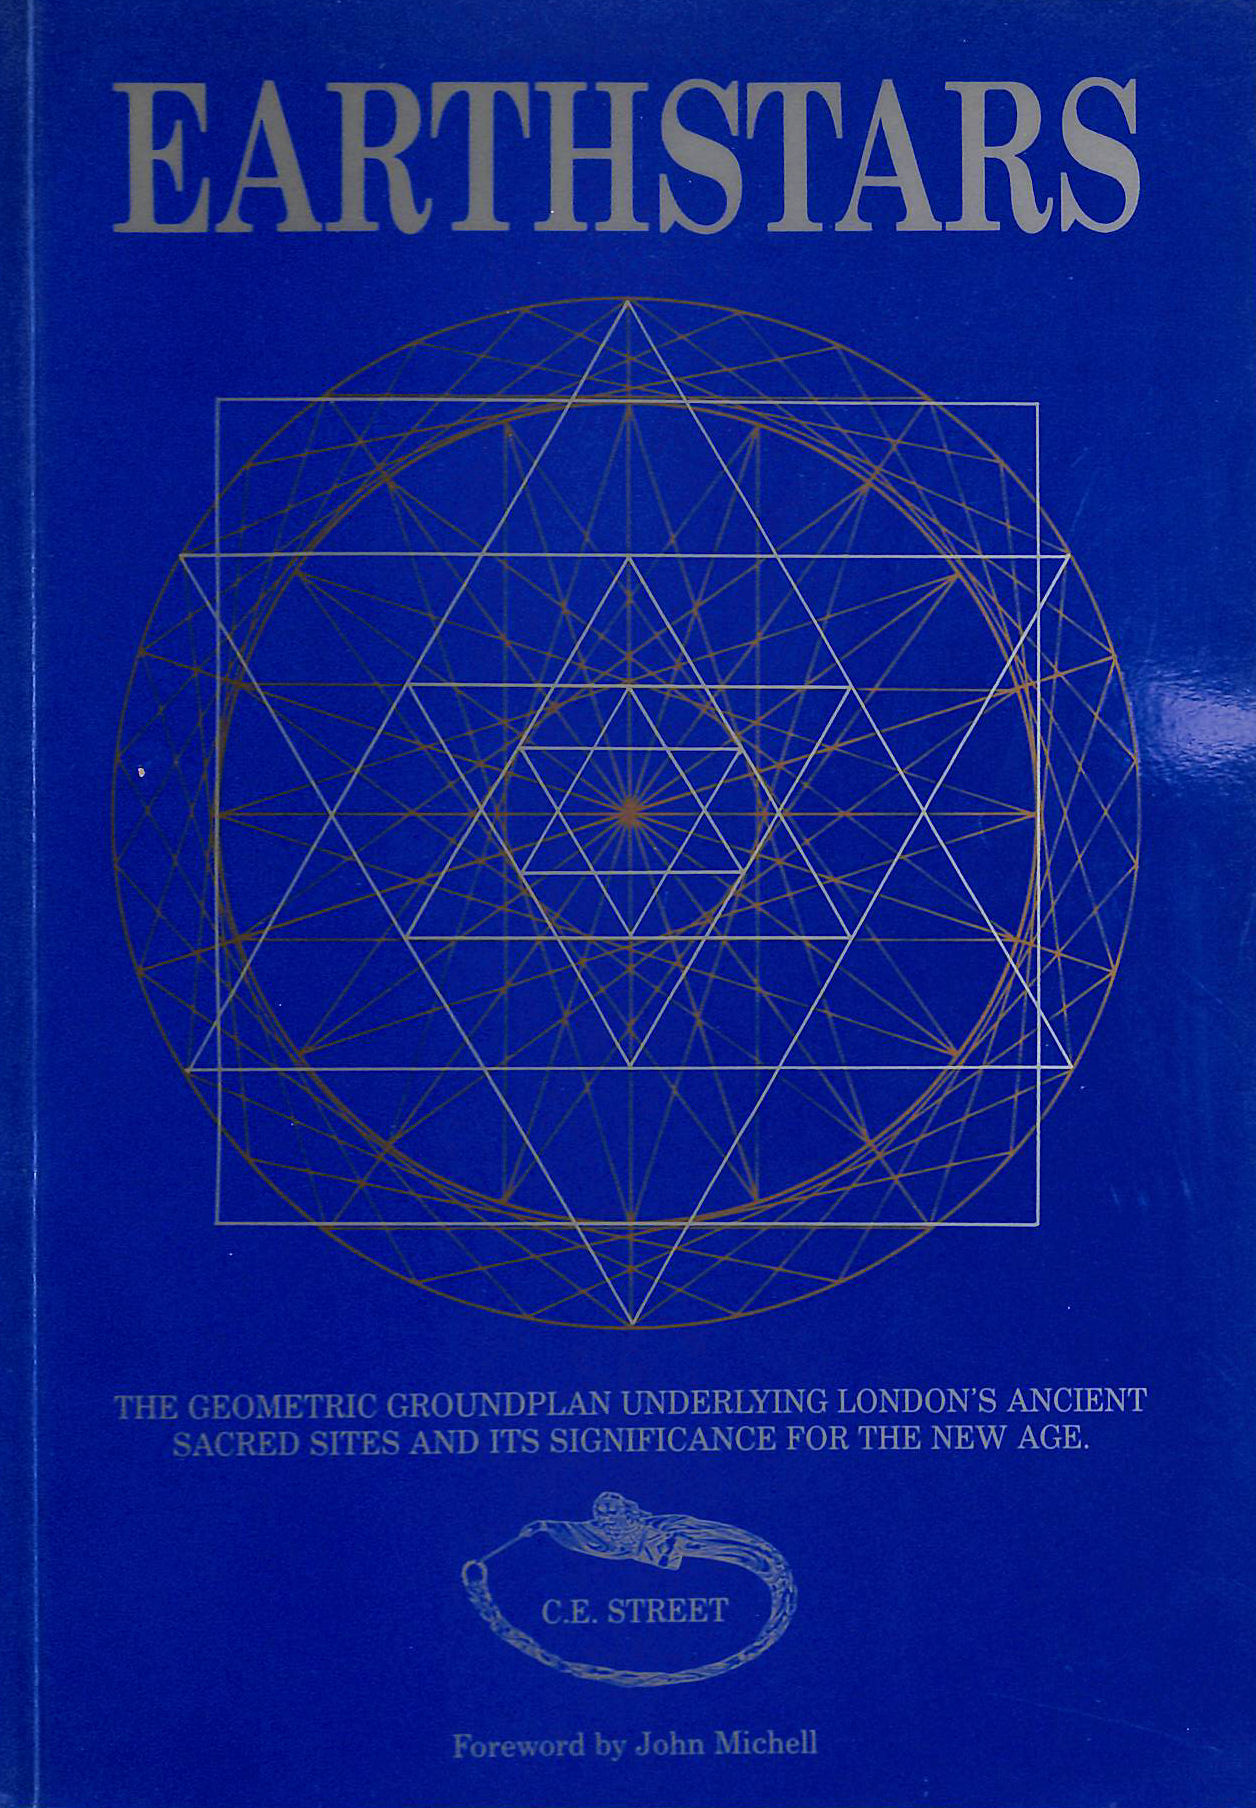 Image for Earthstars: Geometric Groundplan Underlying London's Ancient Sacred Sites and Its Significance for the New Age